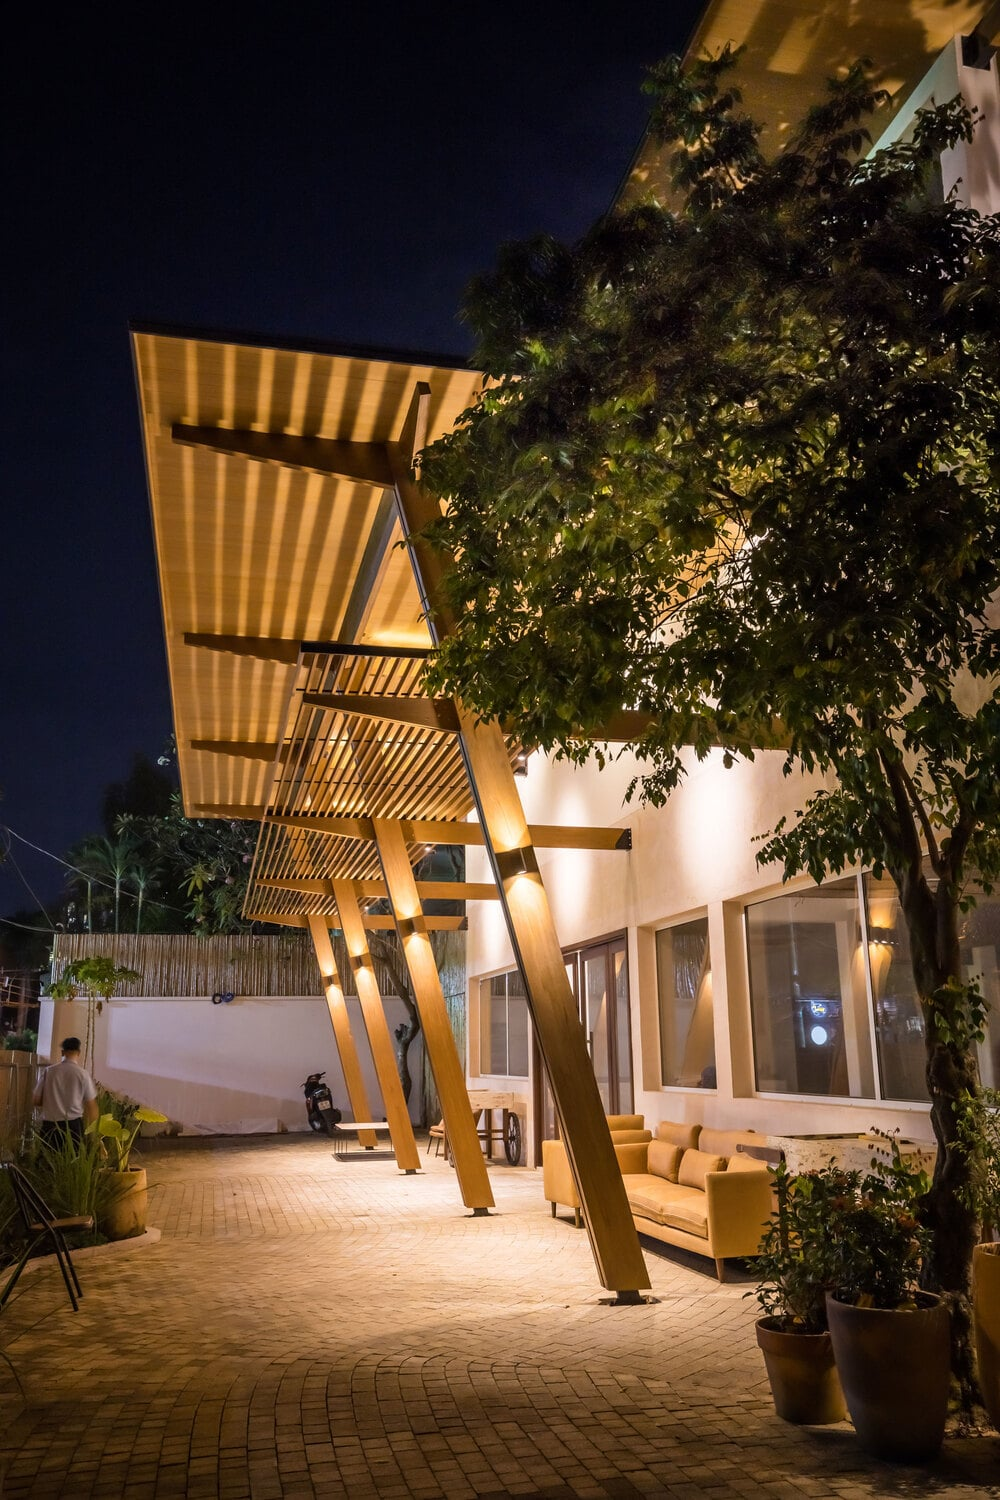 This is a nighttime view of the house exterior with warm lighting and comfortable outdoor sofa facing the landscape.